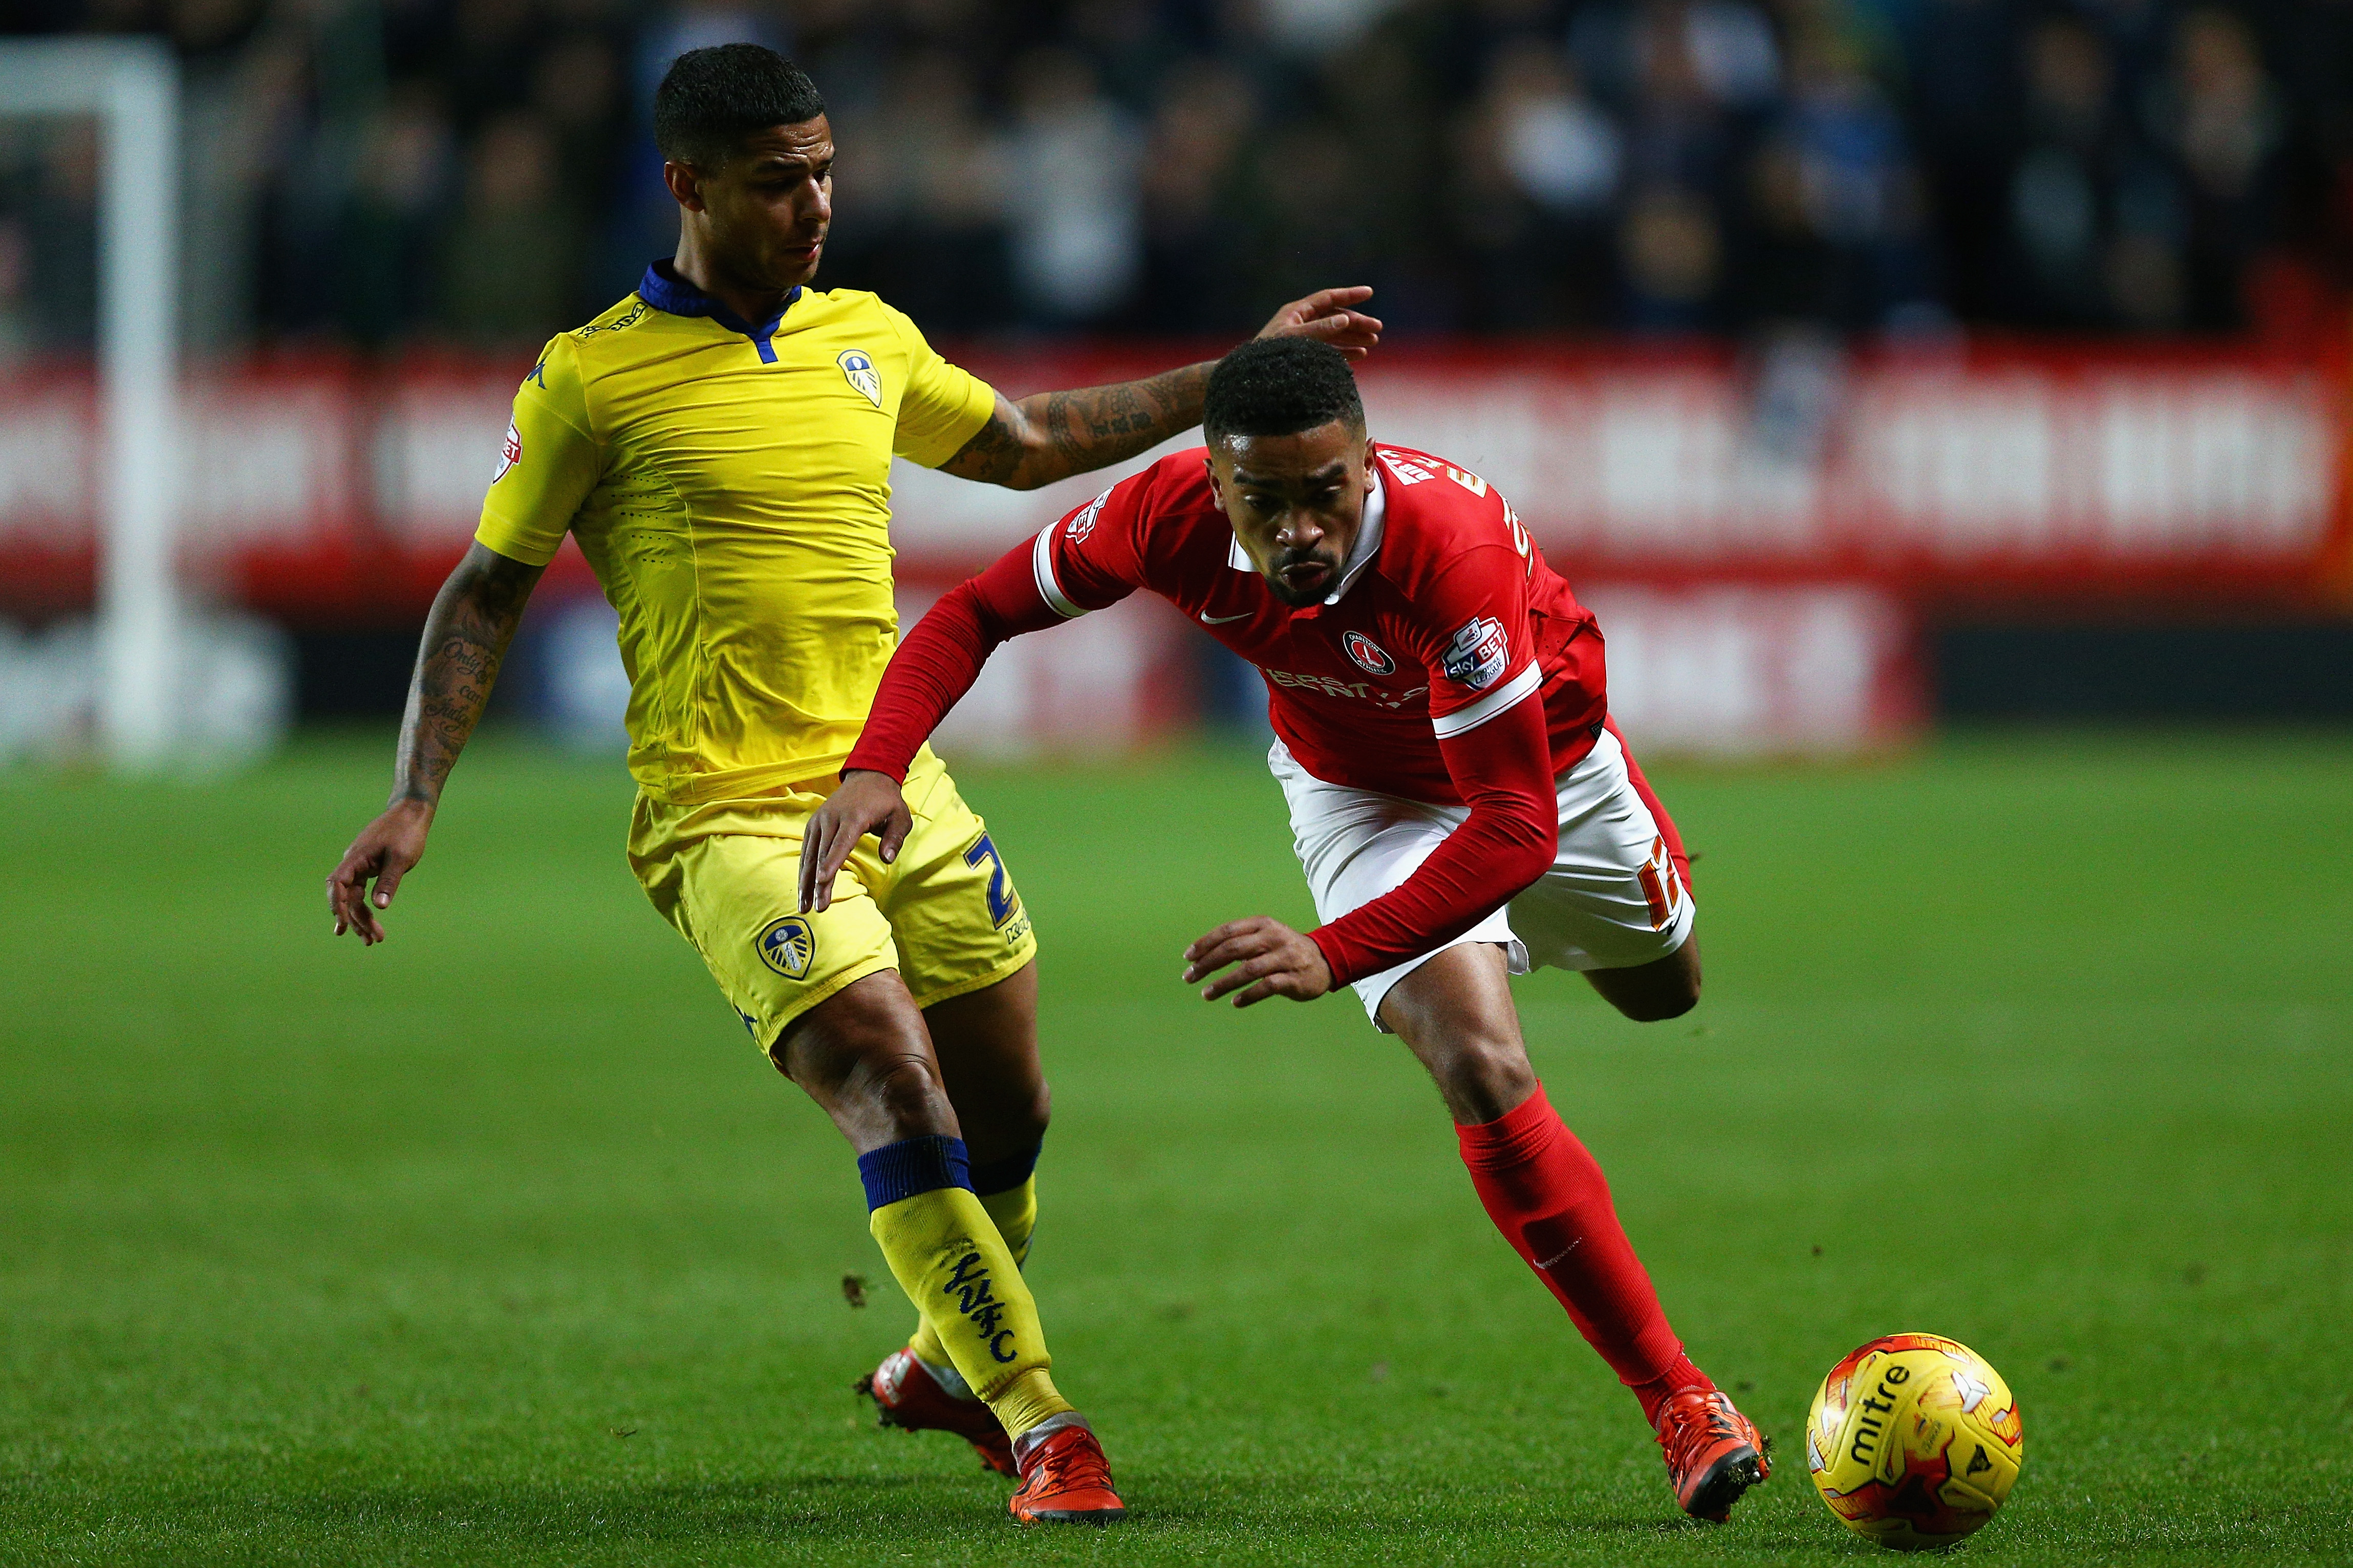 Will Liam Bridcutt (pictured left) and Toums Diagouraga be enough for Leeds in 2016?